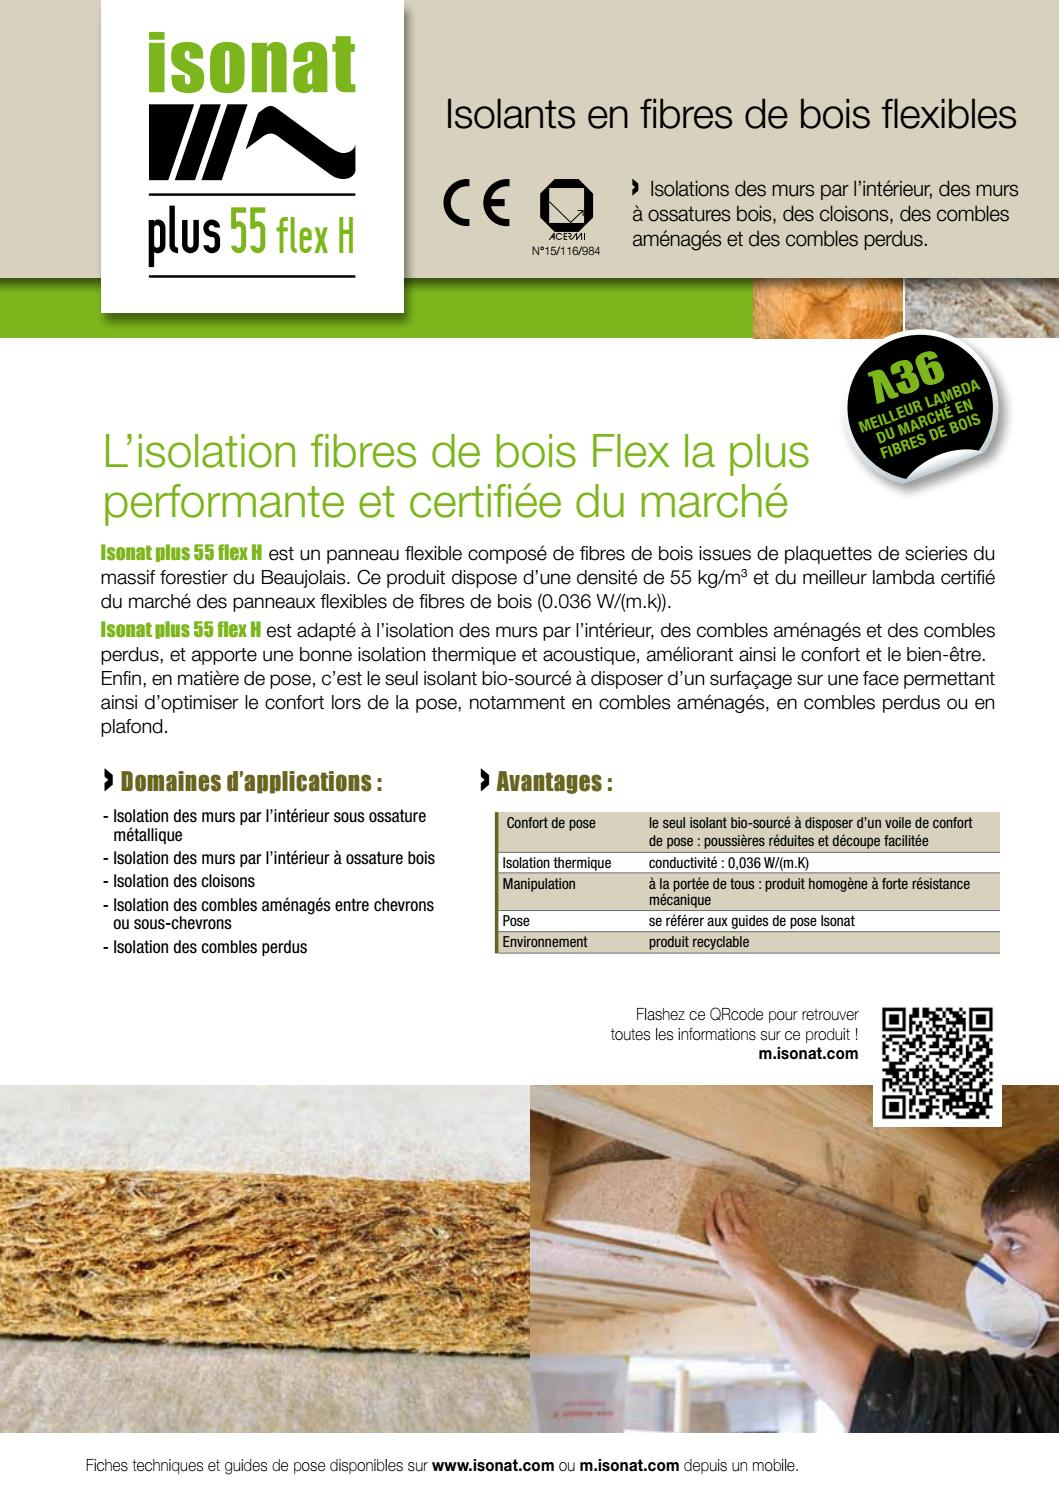 Fiche isonat 55 flex h by isonat issuu for Isonat plus 55 flex